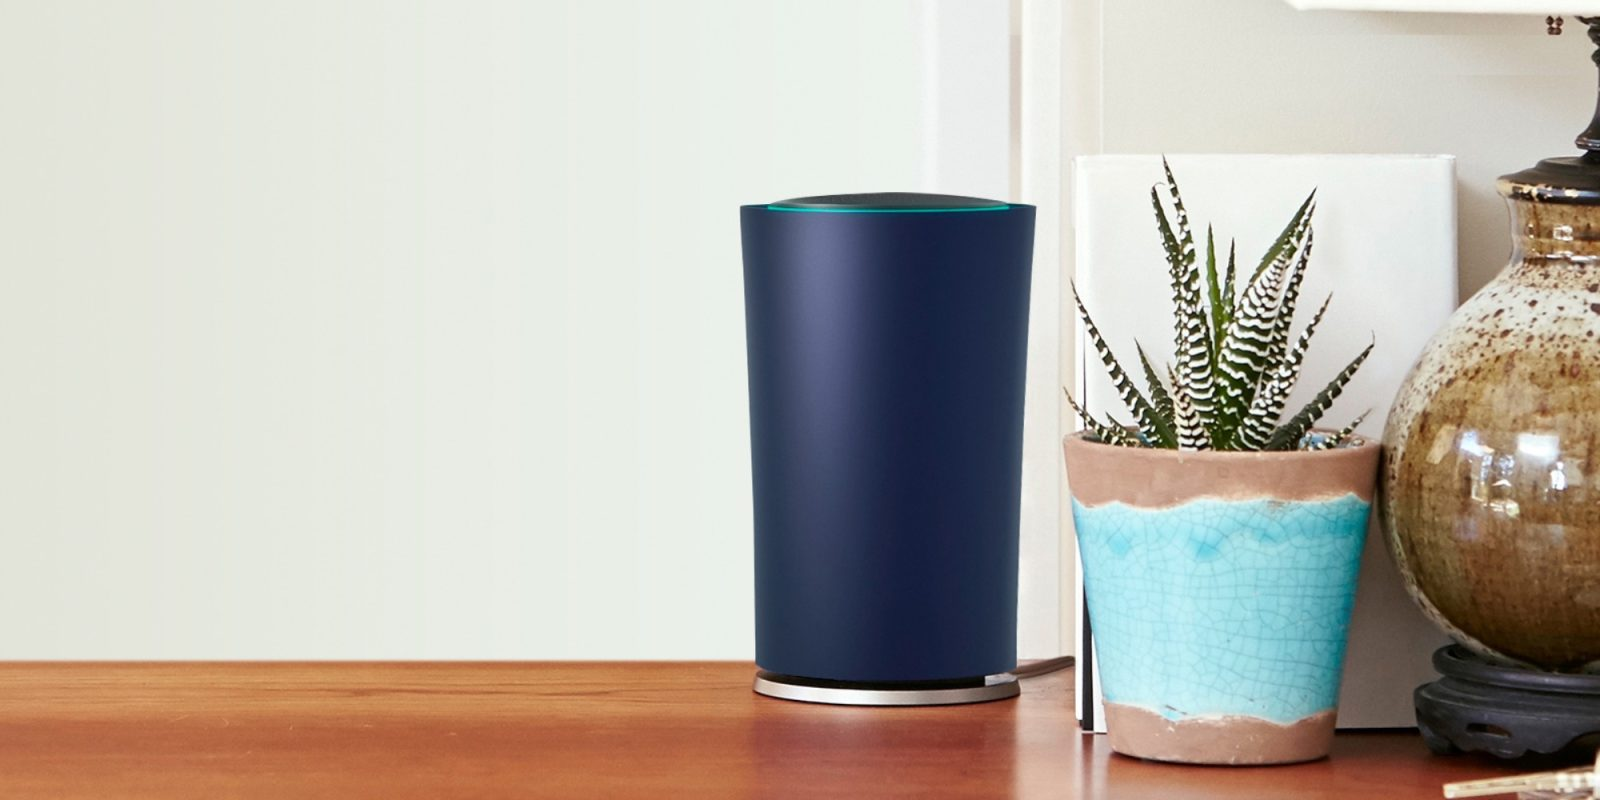 Enjoy Google WiFi features for $55 with TP-Link's 802.11ac OnHub Router